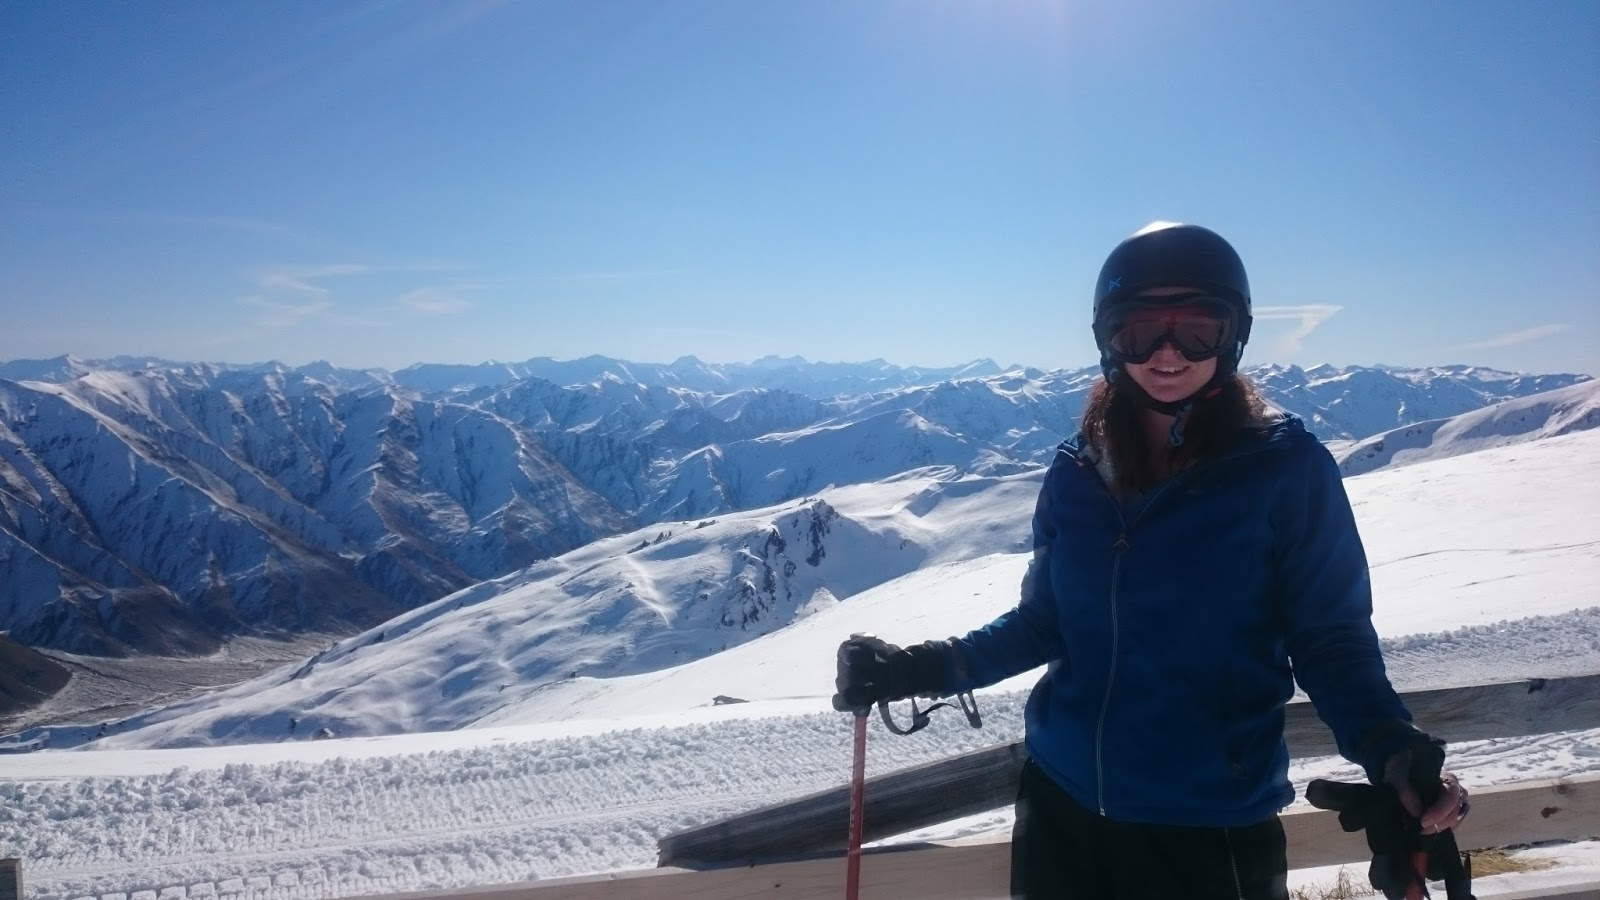 young-woman-in-skiing-gear-with-snowy-mountain-views-behind